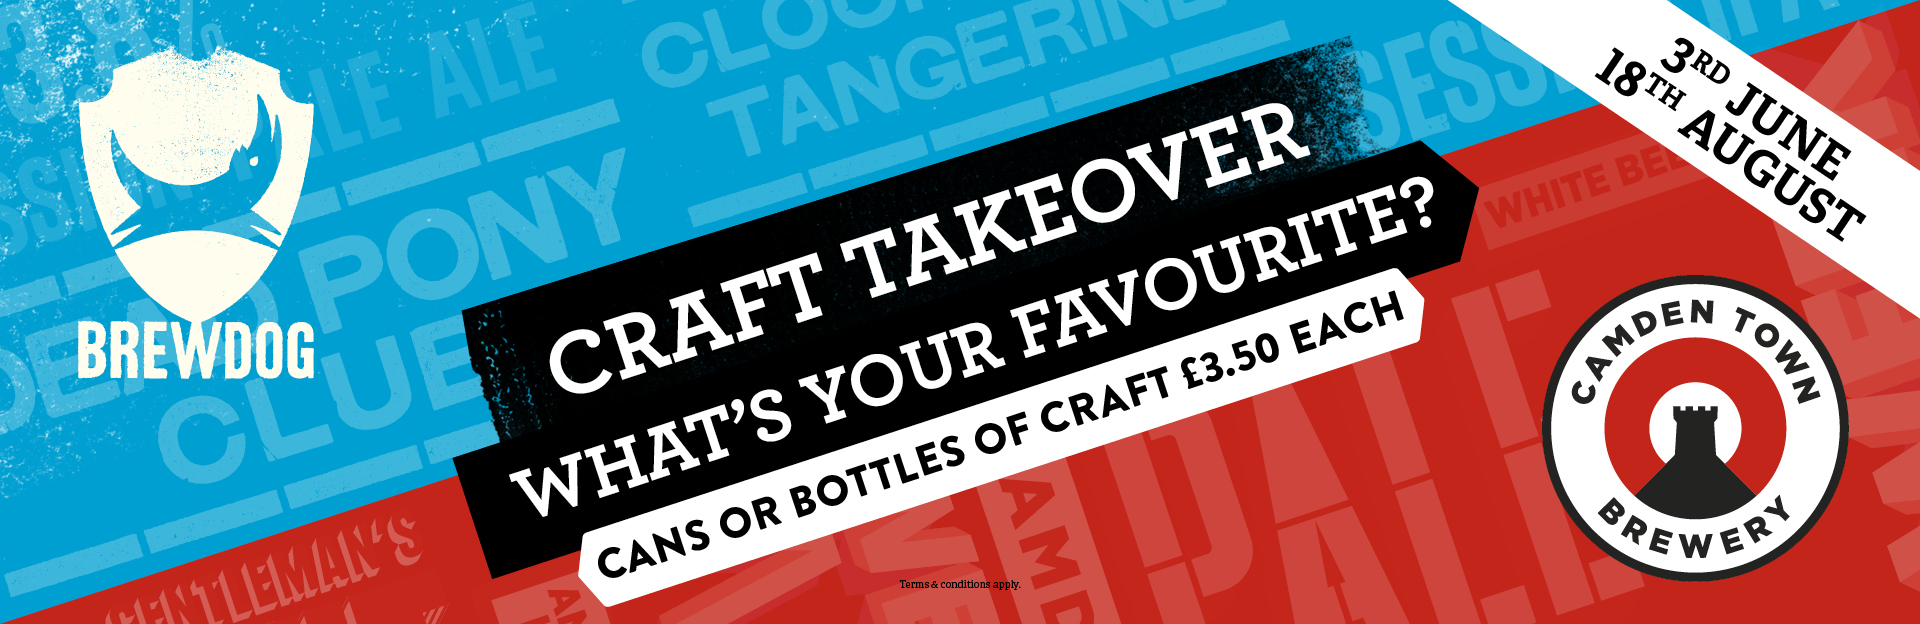 Craft Takeover at The Lauder's